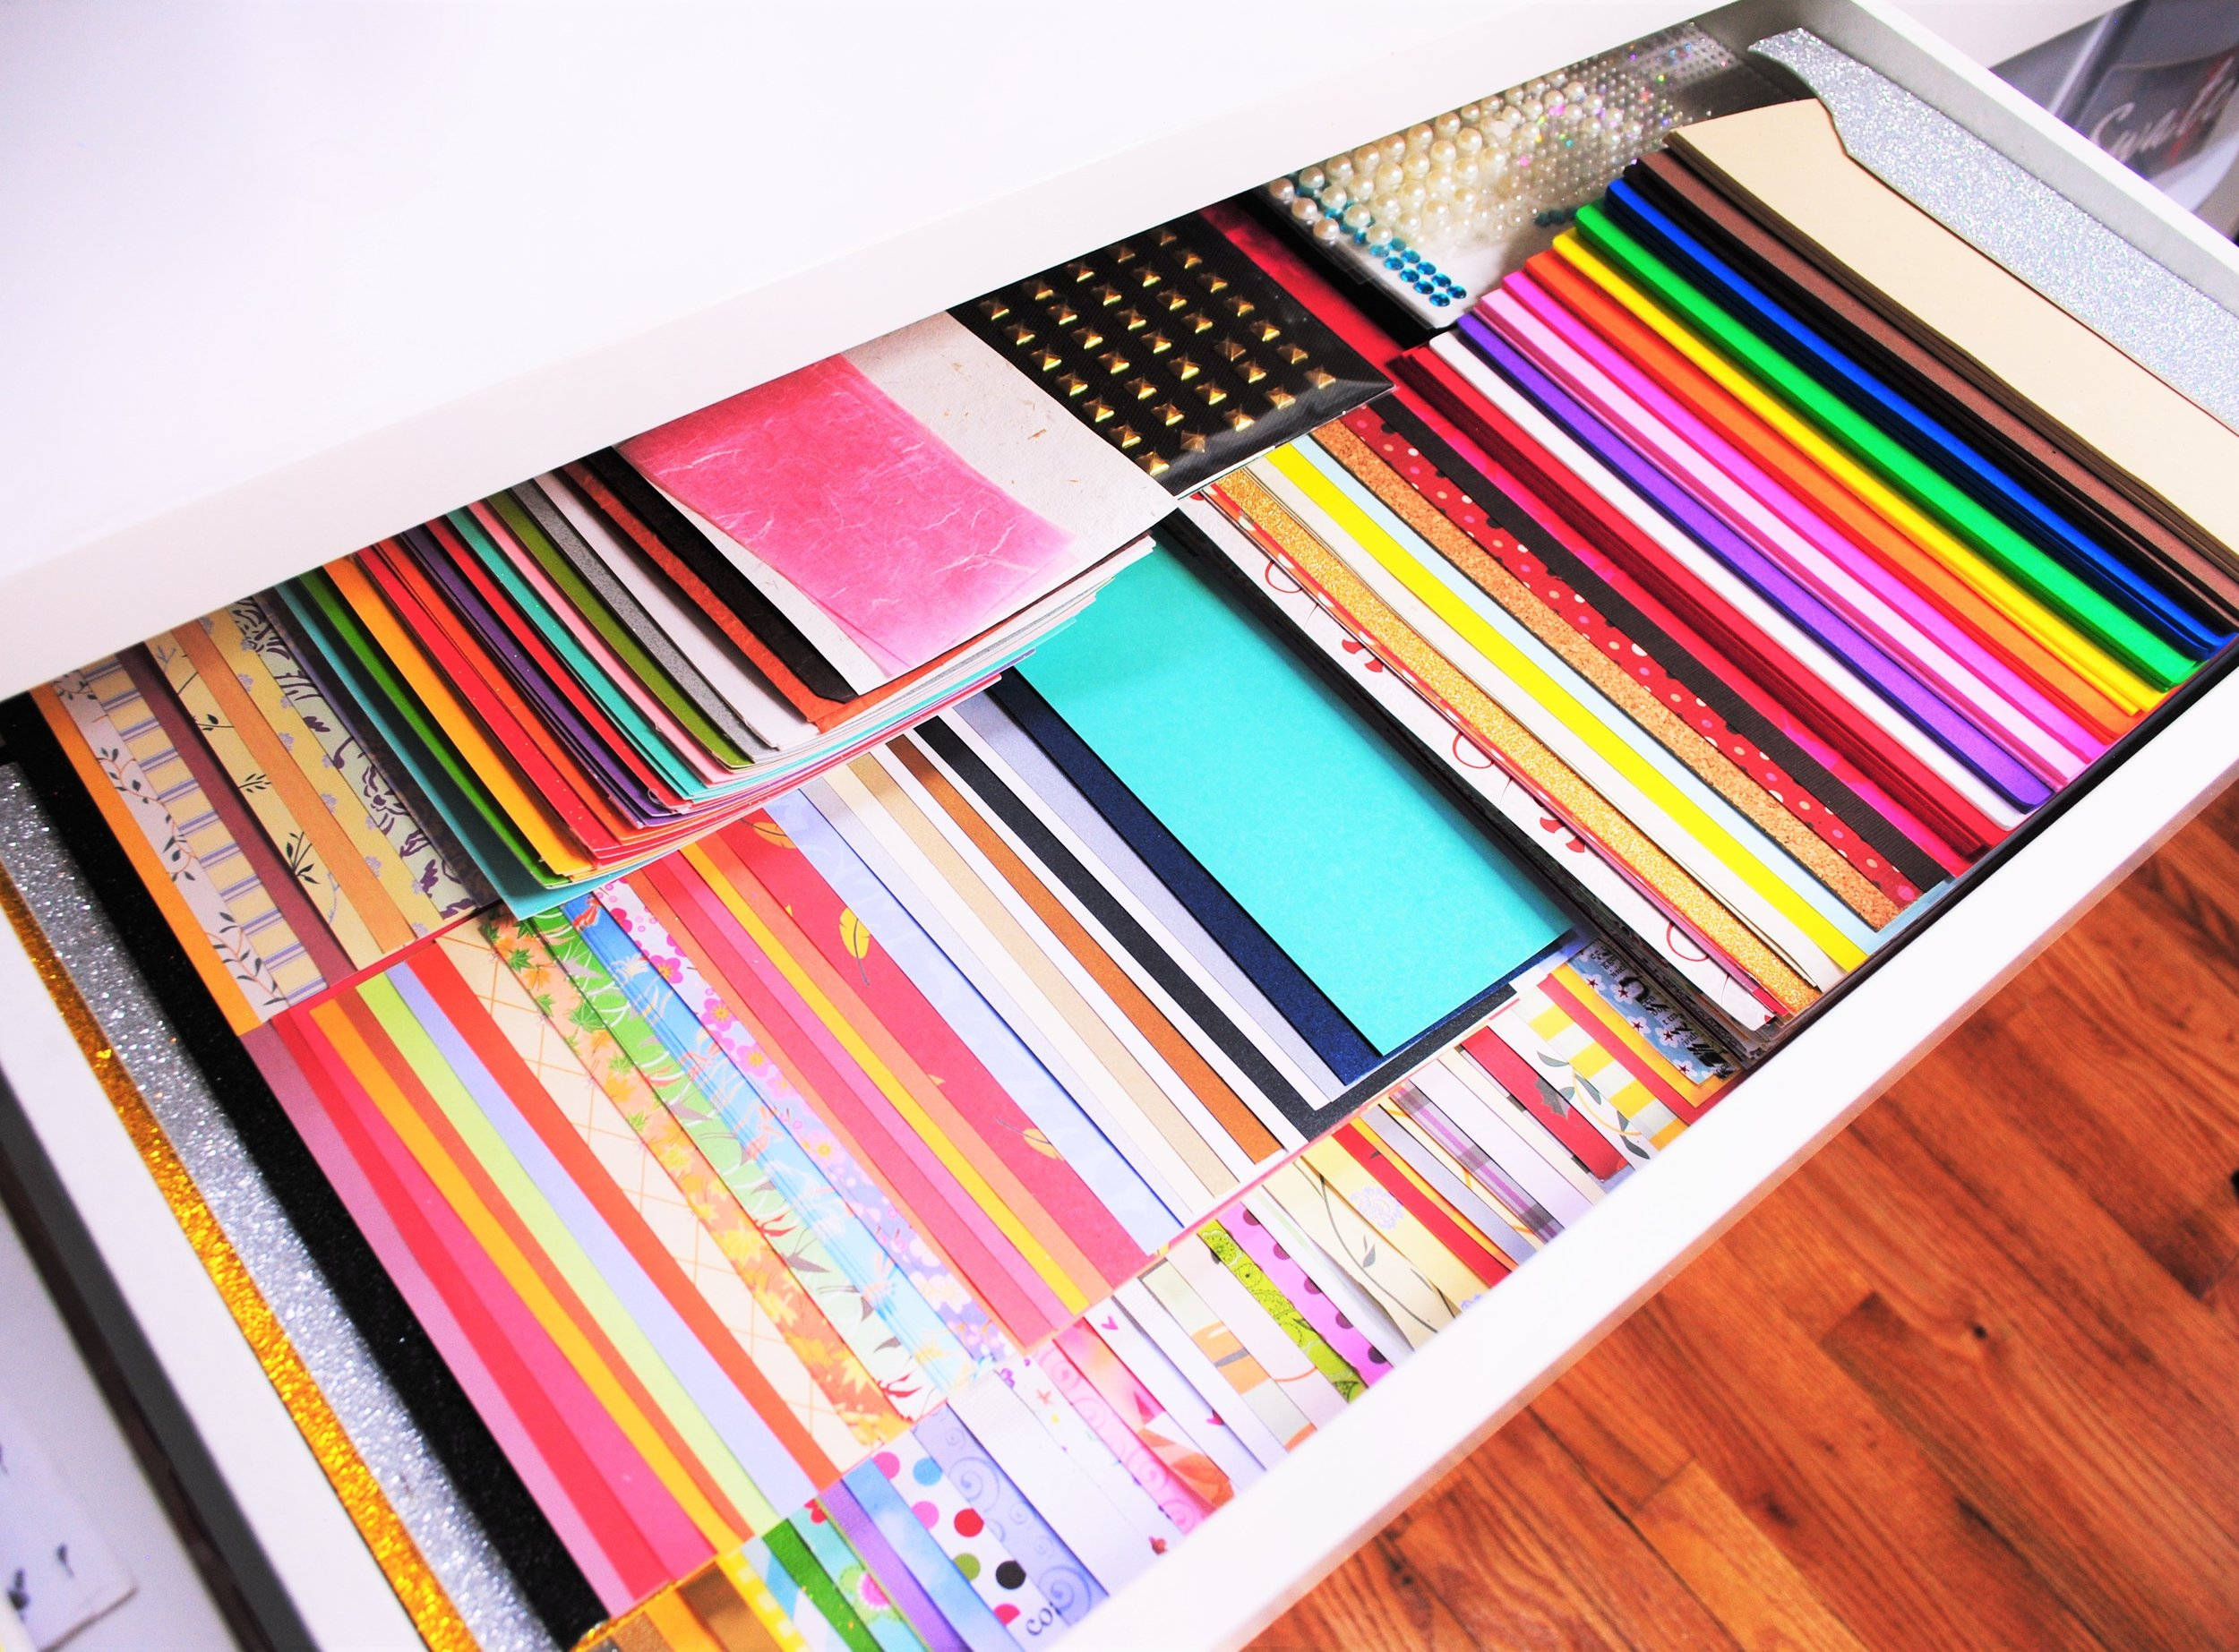 Drawer #1: Paper and Cardstock - I looove colorful paper, so this drawer full cardstock and patterned paper makes my heart sing. I make sure I can see a little bit of every paper so that I don't have to go digging through to find the right color.